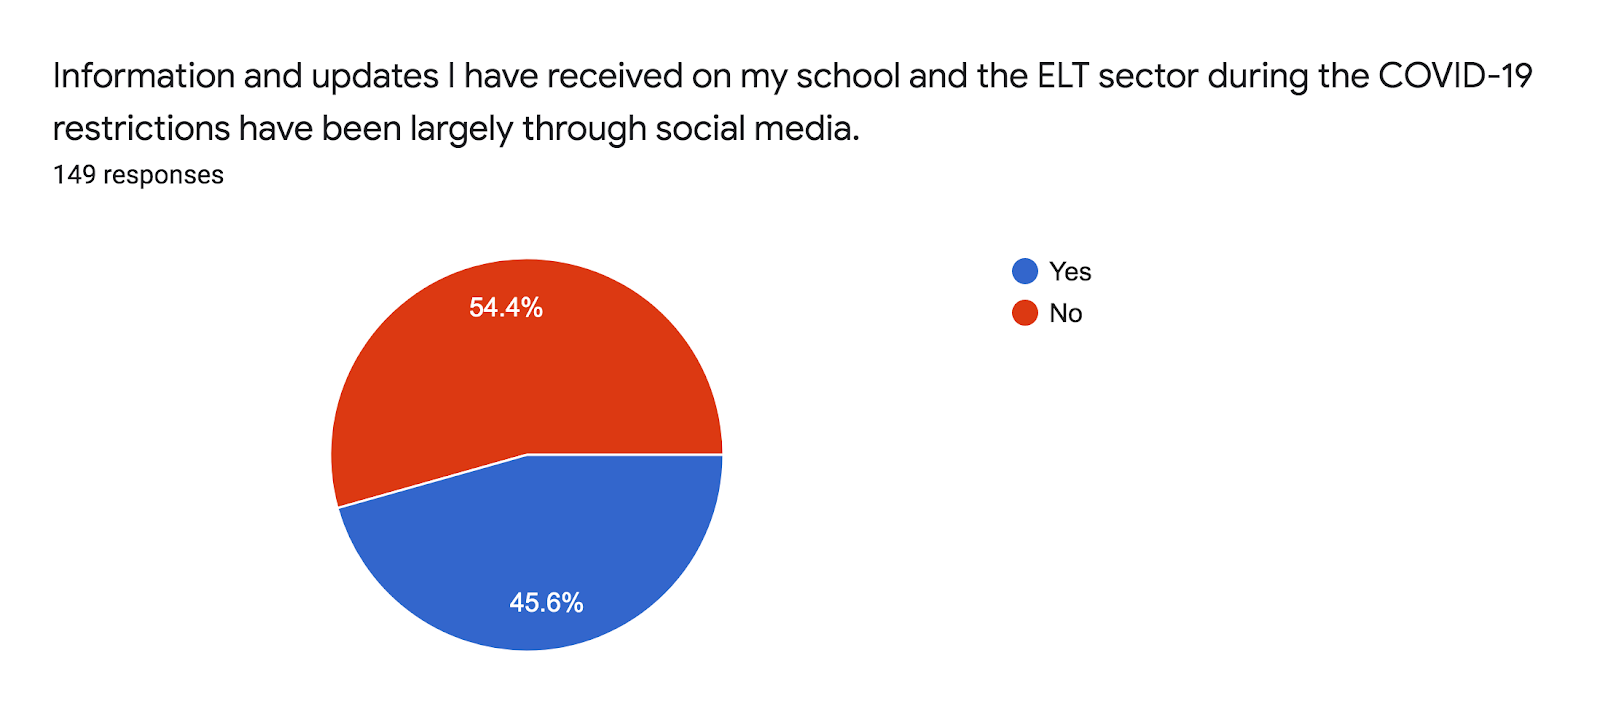 Forms response chart. Question title: Information and updates I have received on my school and the ELT sector during the COVID-19 restrictions have been largely through social media.   . Number of responses: 149 responses.